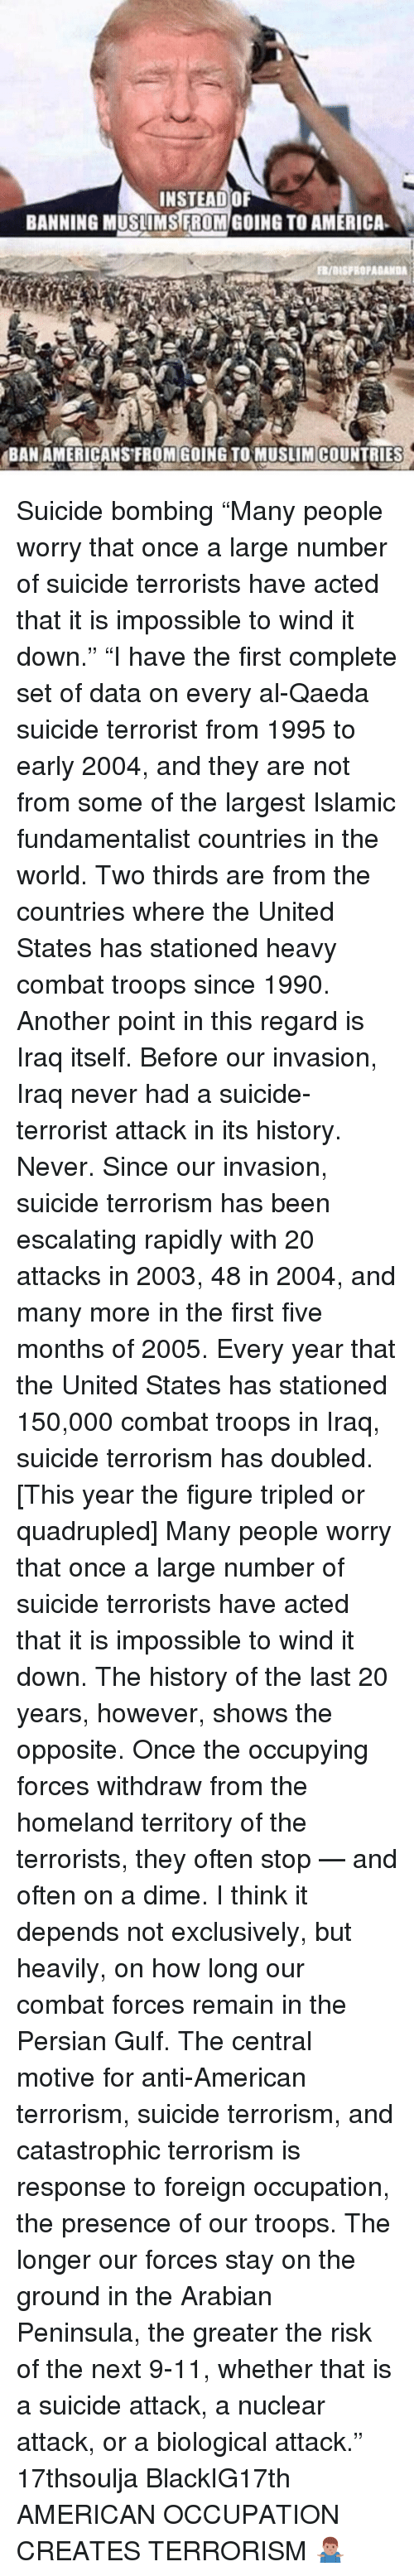 """Escalates: INSTEAD OF  BANNING MUSLIMS FROM GOING TO AMERICA  FR/aISFROPAGANDA  BAN AMERICANS FROM GOING TO MUSLIM COUNTRIES Suicide bombing """"Many people worry that once a large number of suicide terrorists have acted that it is impossible to wind it down."""" """"I have the first complete set of data on every al-Qaeda suicide terrorist from 1995 to early 2004, and they are not from some of the largest Islamic fundamentalist countries in the world. Two thirds are from the countries where the United States has stationed heavy combat troops since 1990. Another point in this regard is Iraq itself. Before our invasion, Iraq never had a suicide-terrorist attack in its history. Never. Since our invasion, suicide terrorism has been escalating rapidly with 20 attacks in 2003, 48 in 2004, and many more in the first five months of 2005. Every year that the United States has stationed 150,000 combat troops in Iraq, suicide terrorism has doubled. [This year the figure tripled or quadrupled] Many people worry that once a large number of suicide terrorists have acted that it is impossible to wind it down. The history of the last 20 years, however, shows the opposite. Once the occupying forces withdraw from the homeland territory of the terrorists, they often stop — and often on a dime. I think it depends not exclusively, but heavily, on how long our combat forces remain in the Persian Gulf. The central motive for anti-American terrorism, suicide terrorism, and catastrophic terrorism is response to foreign occupation, the presence of our troops. The longer our forces stay on the ground in the Arabian Peninsula, the greater the risk of the next 9-11, whether that is a suicide attack, a nuclear attack, or a biological attack."""" 17thsoulja BlackIG17th AMERICAN OCCUPATION CREATES TERRORISM 🤷🏽♂️"""